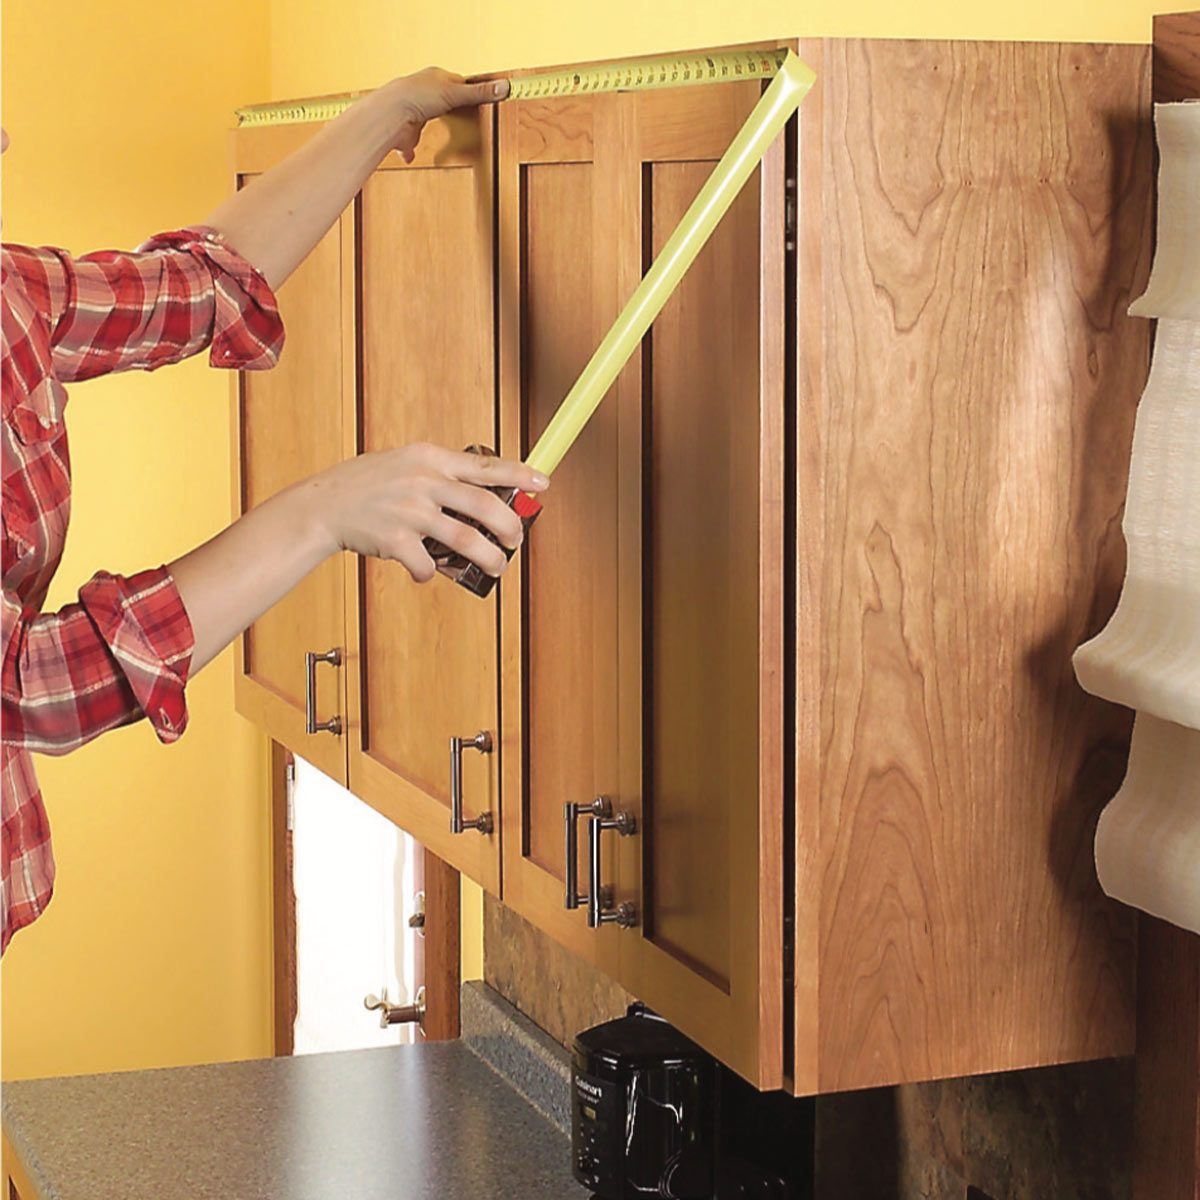 How to Add Shelves Above Kitchen Cabinets | Family Handyman